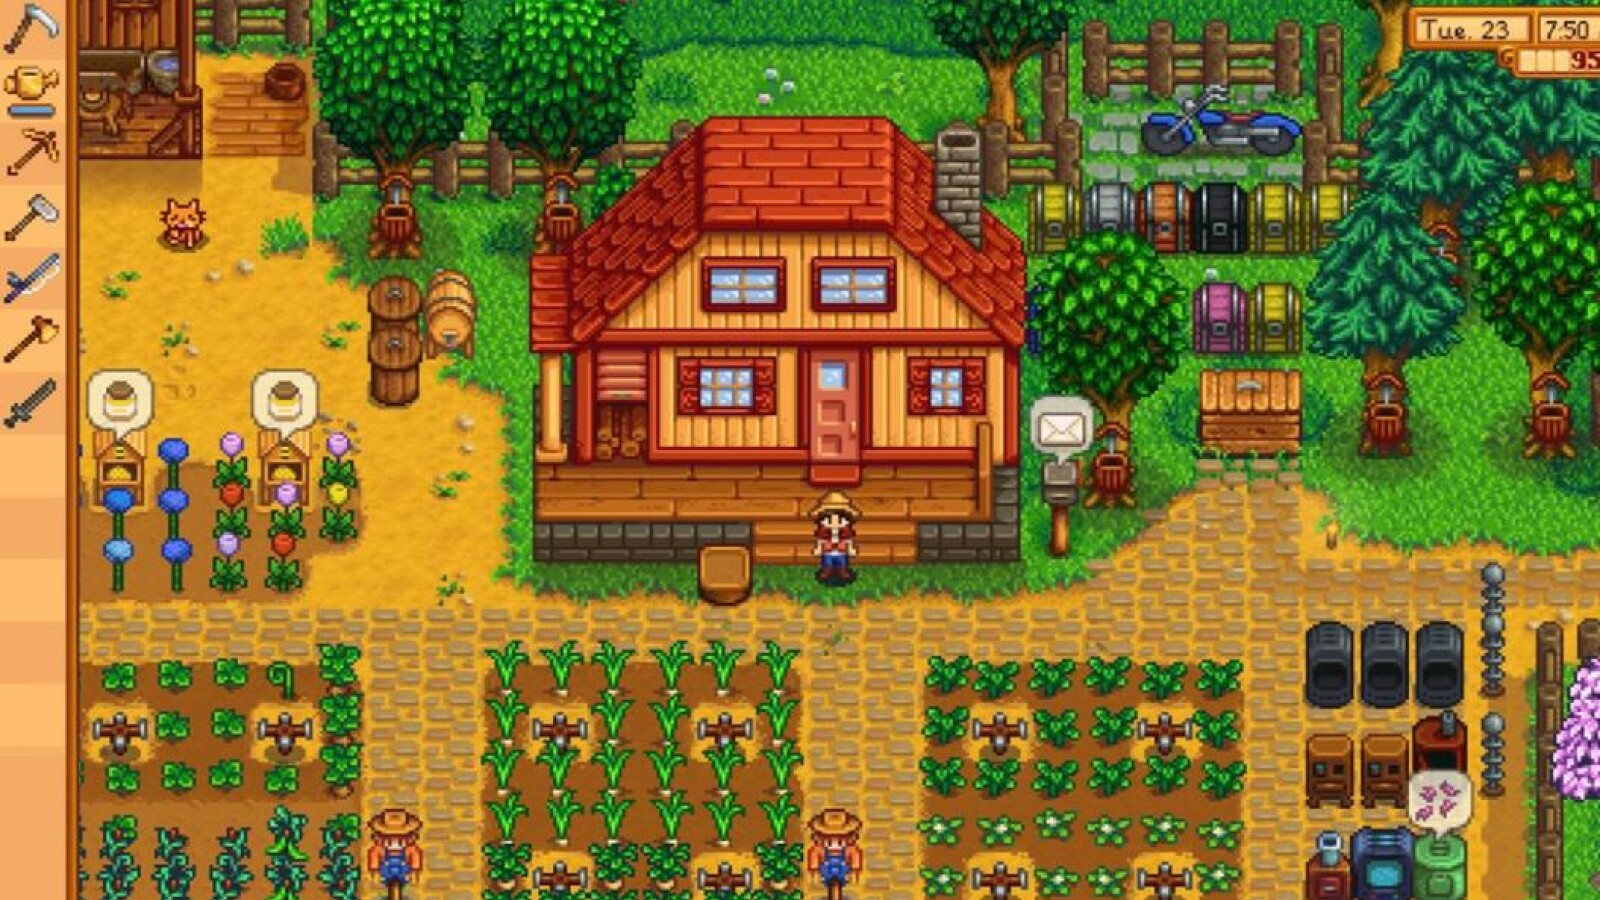 Stardew Valley: Pre-order of iOS version for iPad and iPhone here